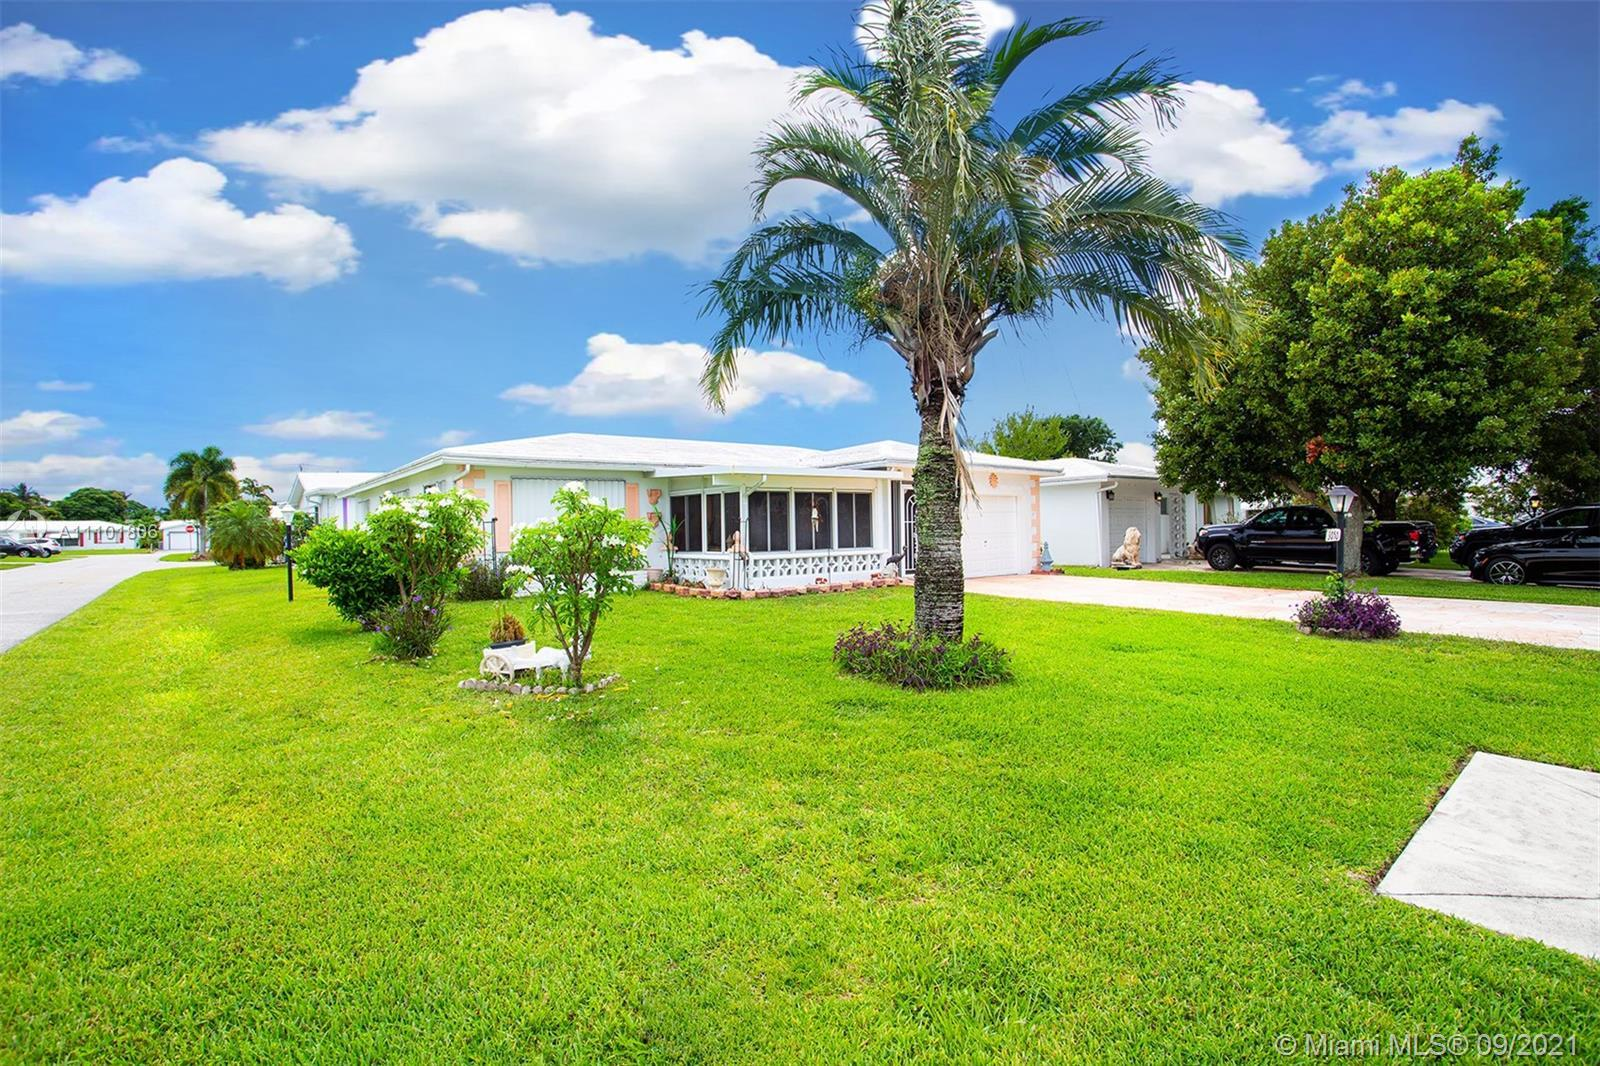 55+ Community. Wonderful, Move in Ready Large Corner House in Pompano Beach! 2 Bedrooms / 2 Bathroom